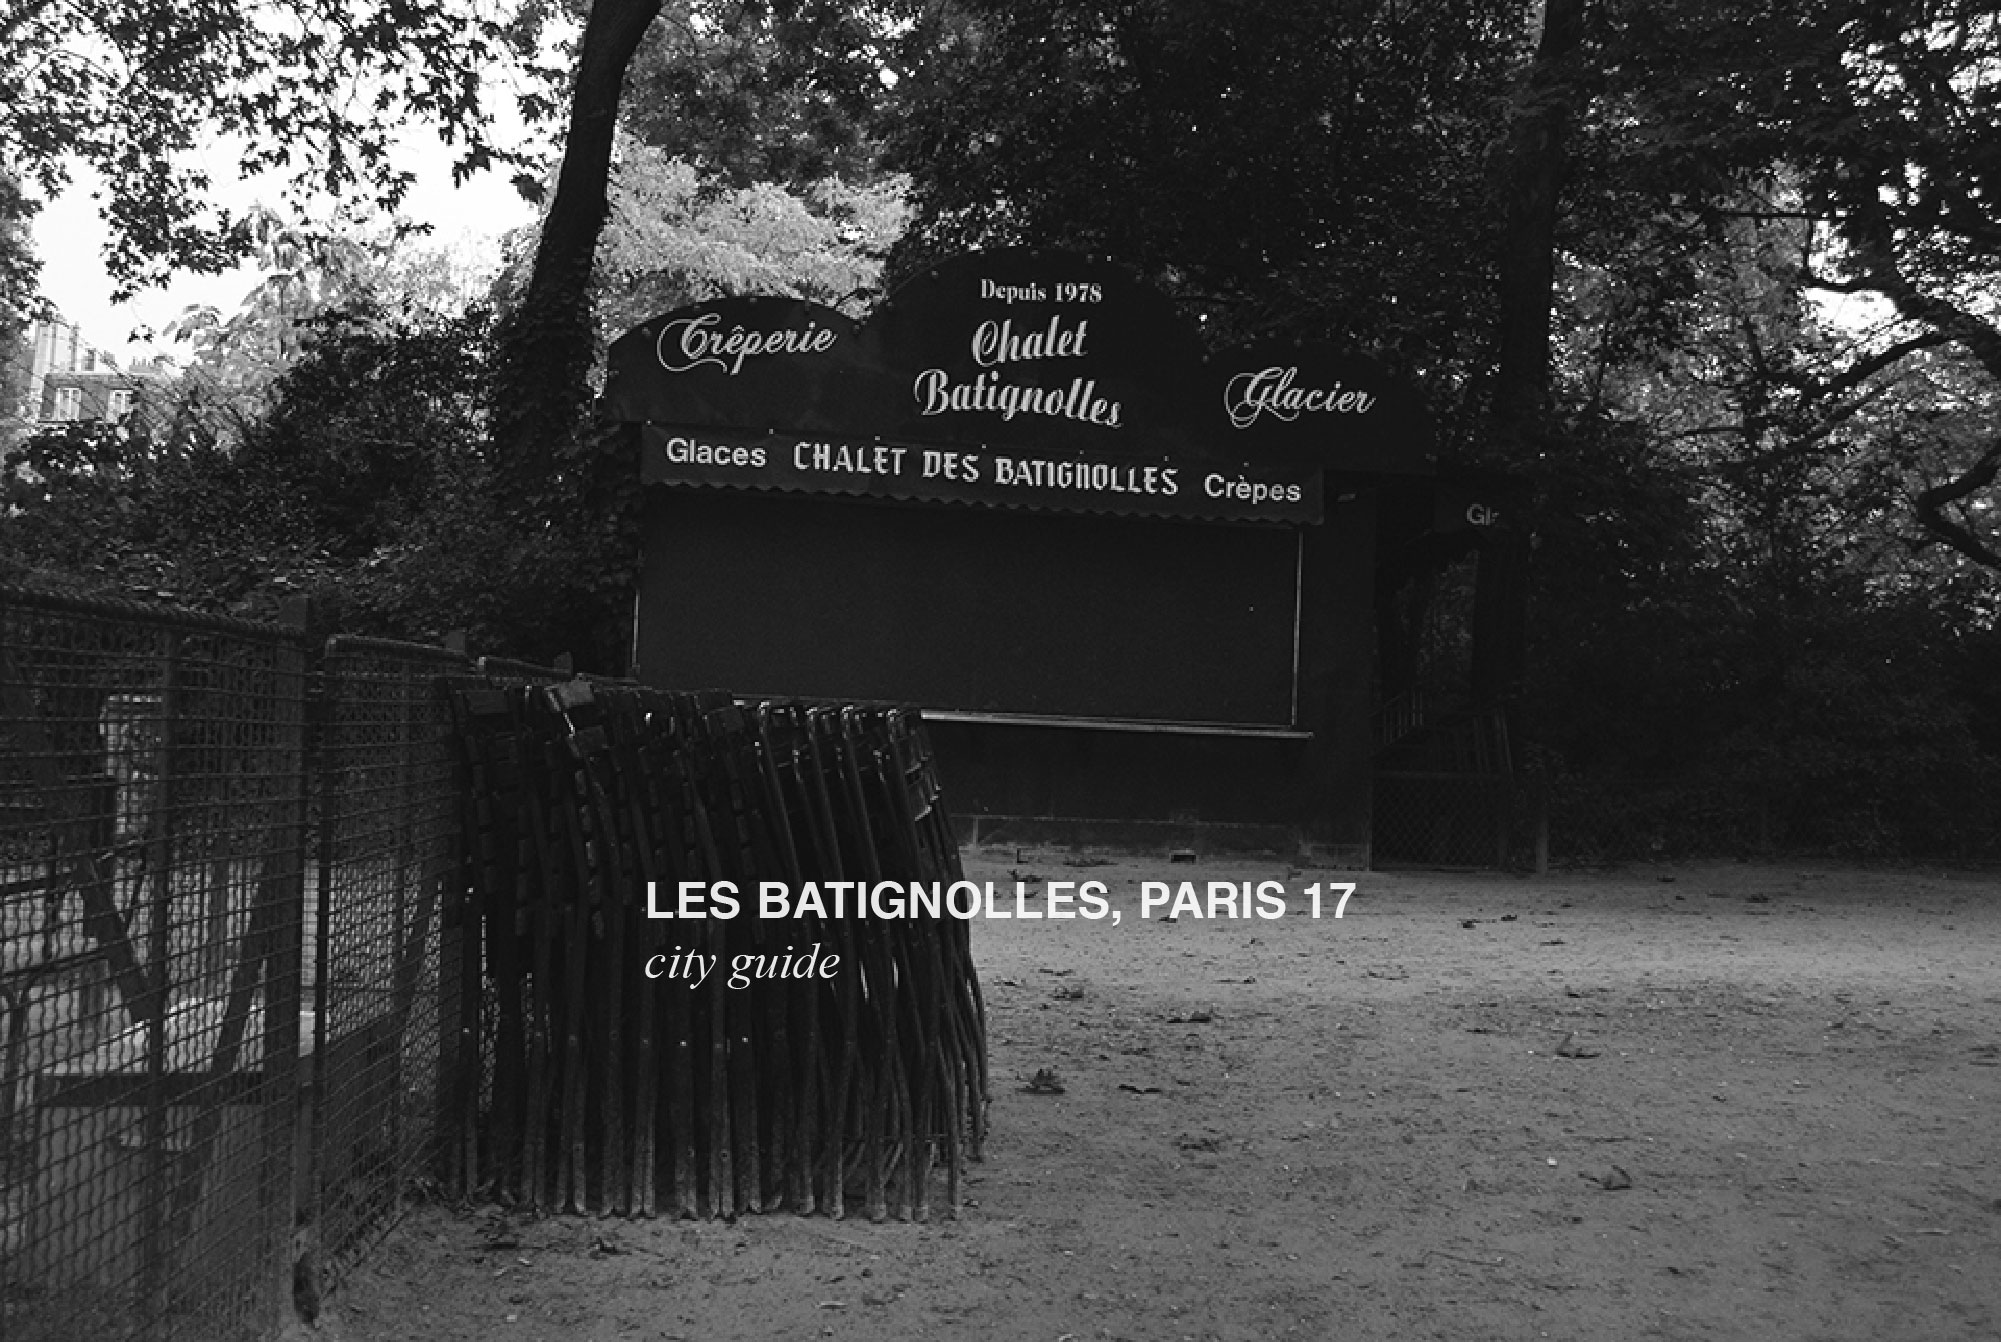 batignolles-paris-city-guide-01